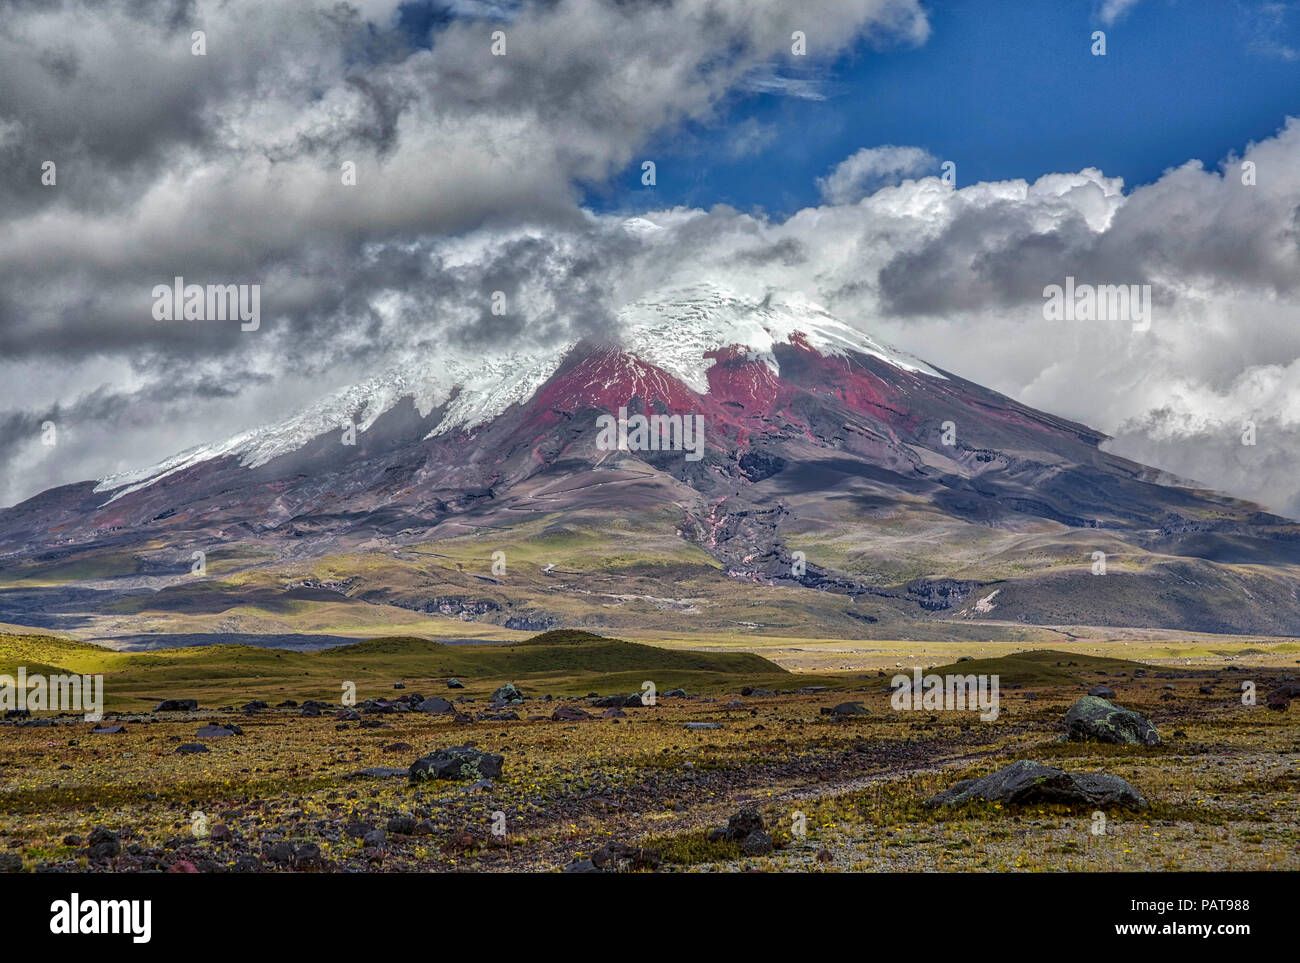 The Cotopaxi Volcano in Ecuador - Stock Image